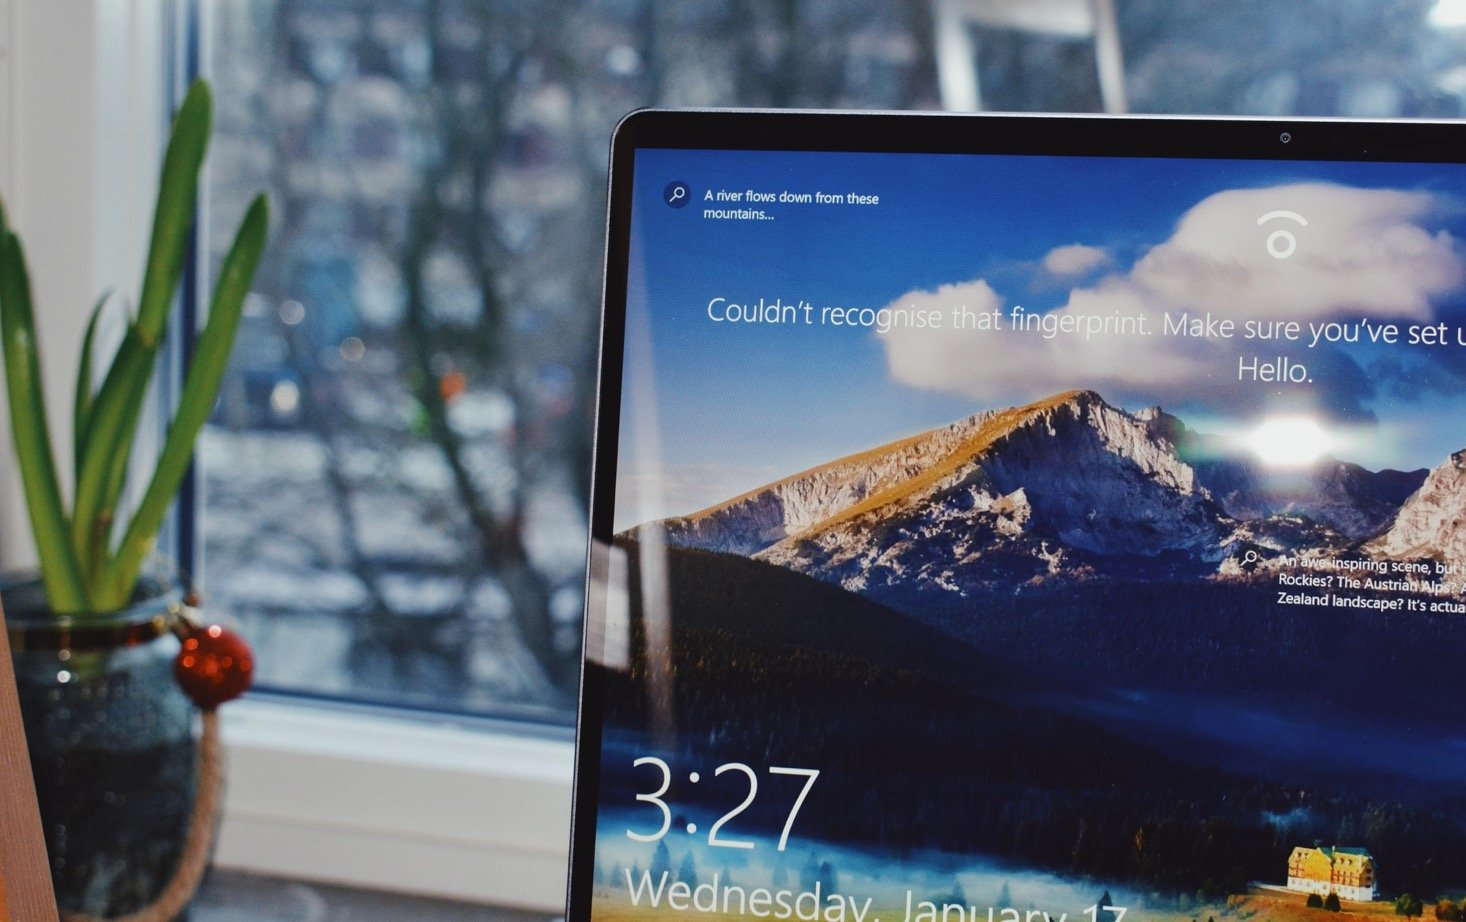 Windows 10X should allow you to resume your activities at lightning speed from sleep mode